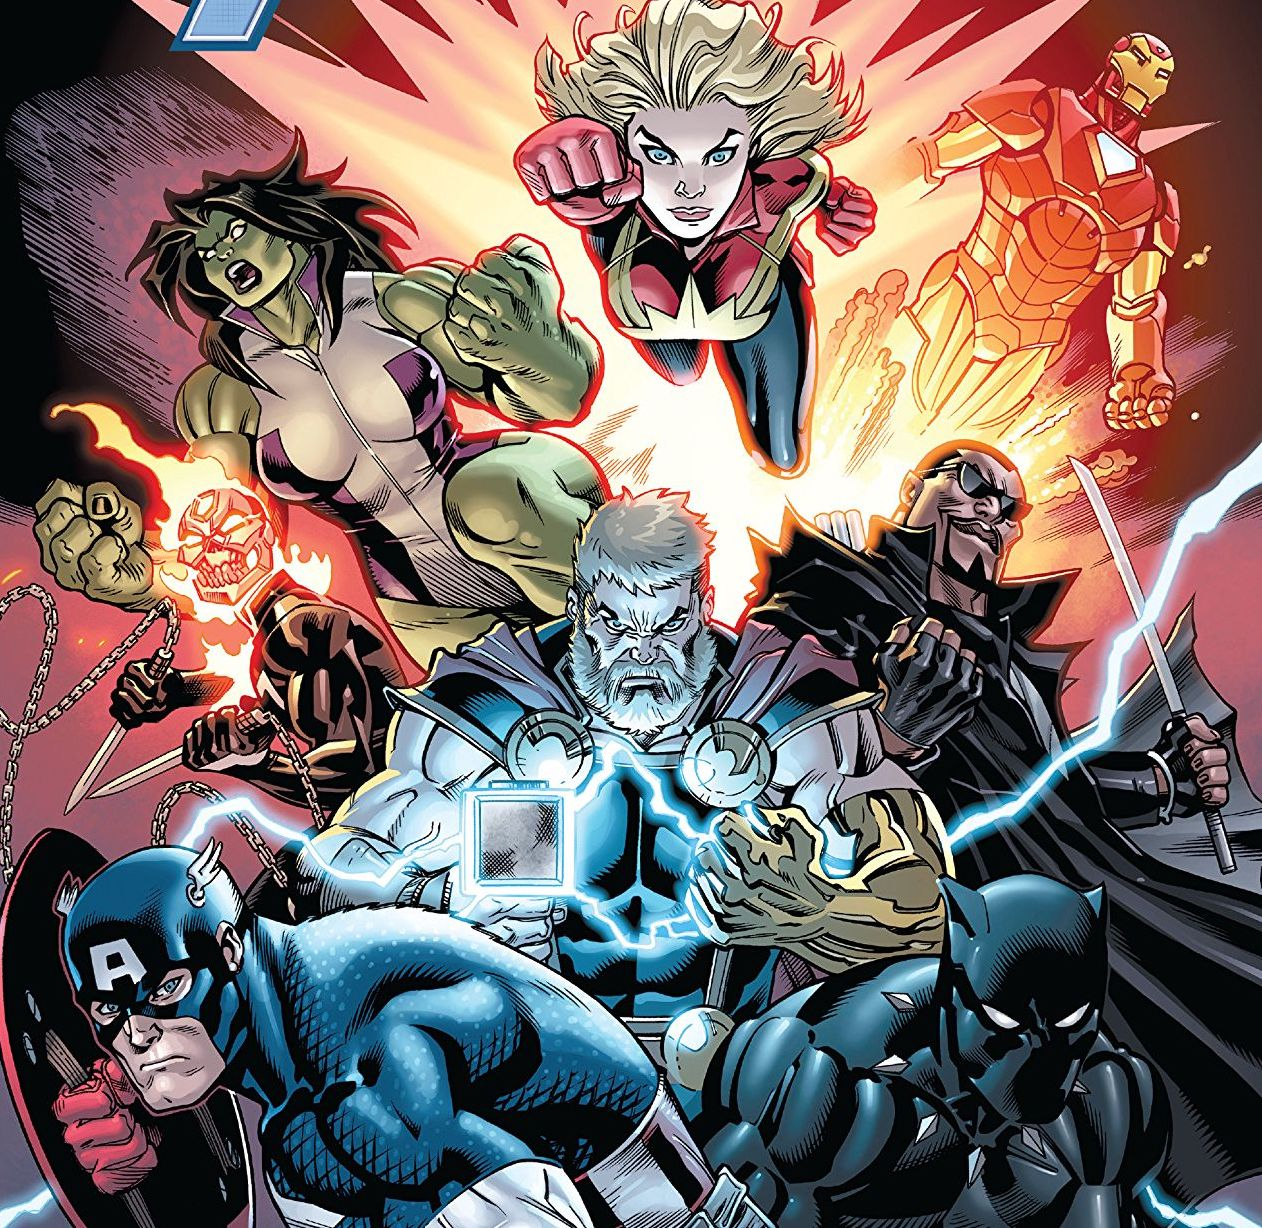 Avengers Vol. 4: War of the Realms TPB Review